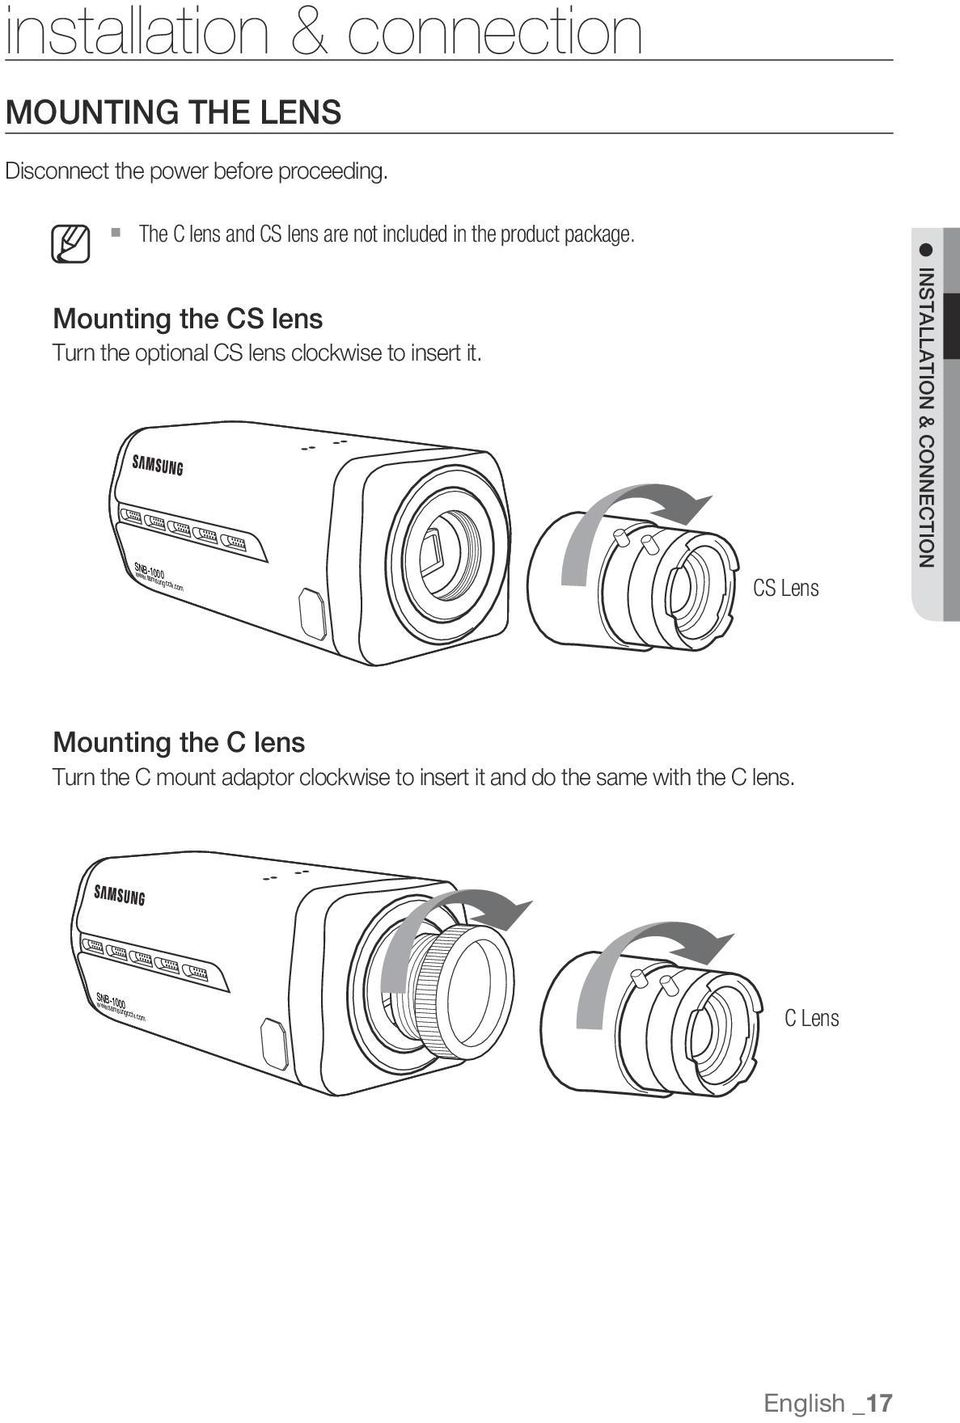 Mounting the CS lens Turn the optional CS lens clockwise to insert it. SNB-1000 www.samsungcctv.